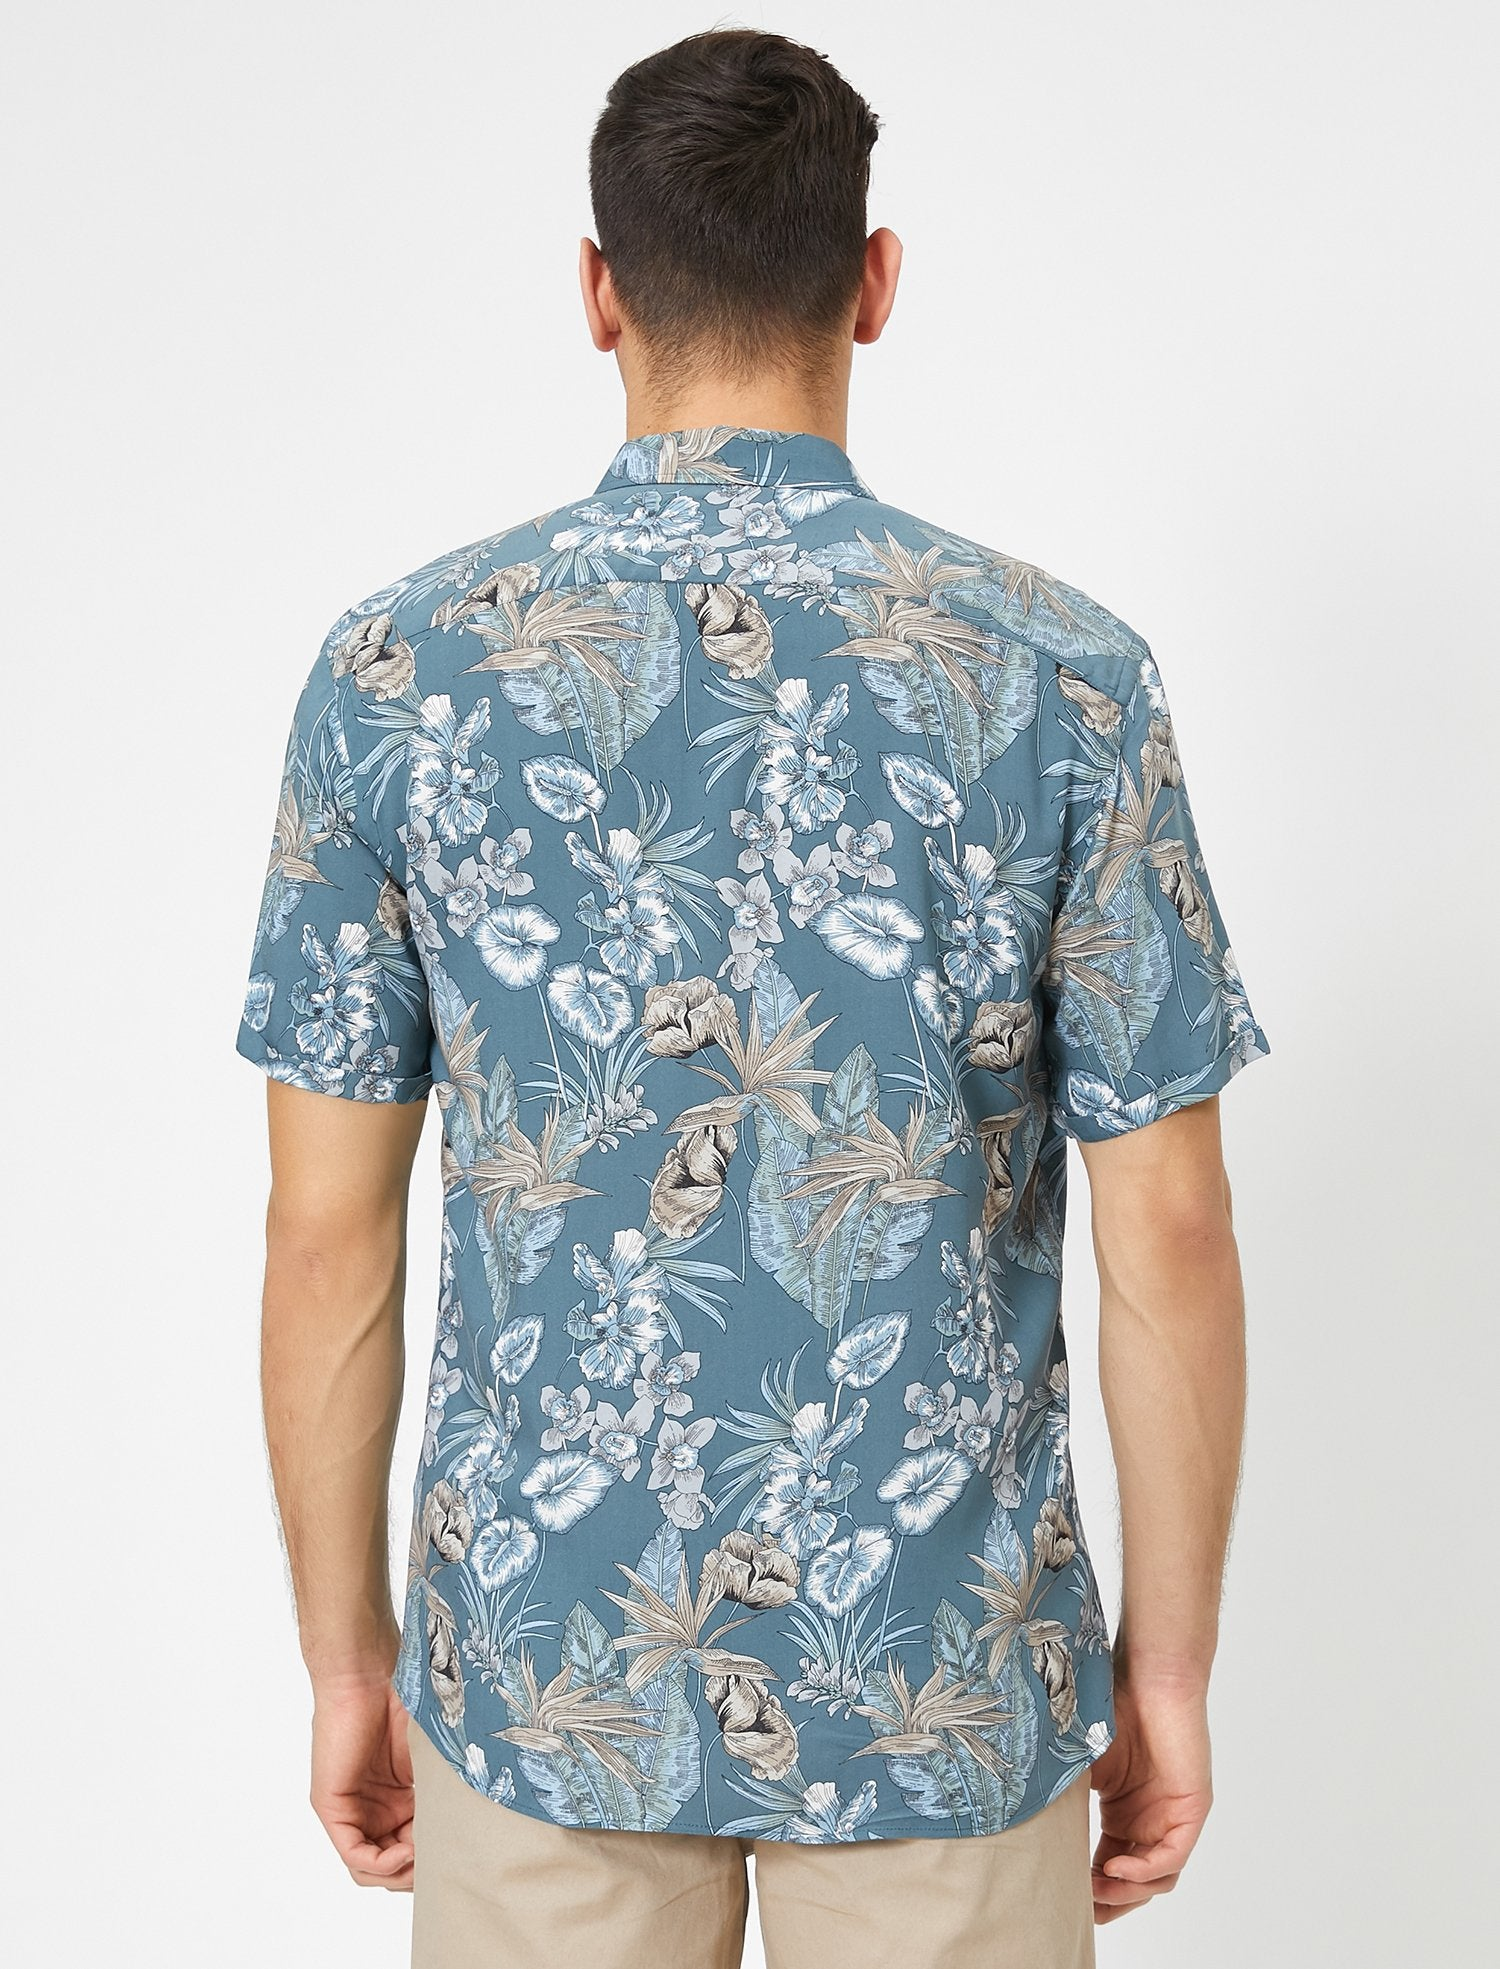 Floral Print SS Shirt in Blue